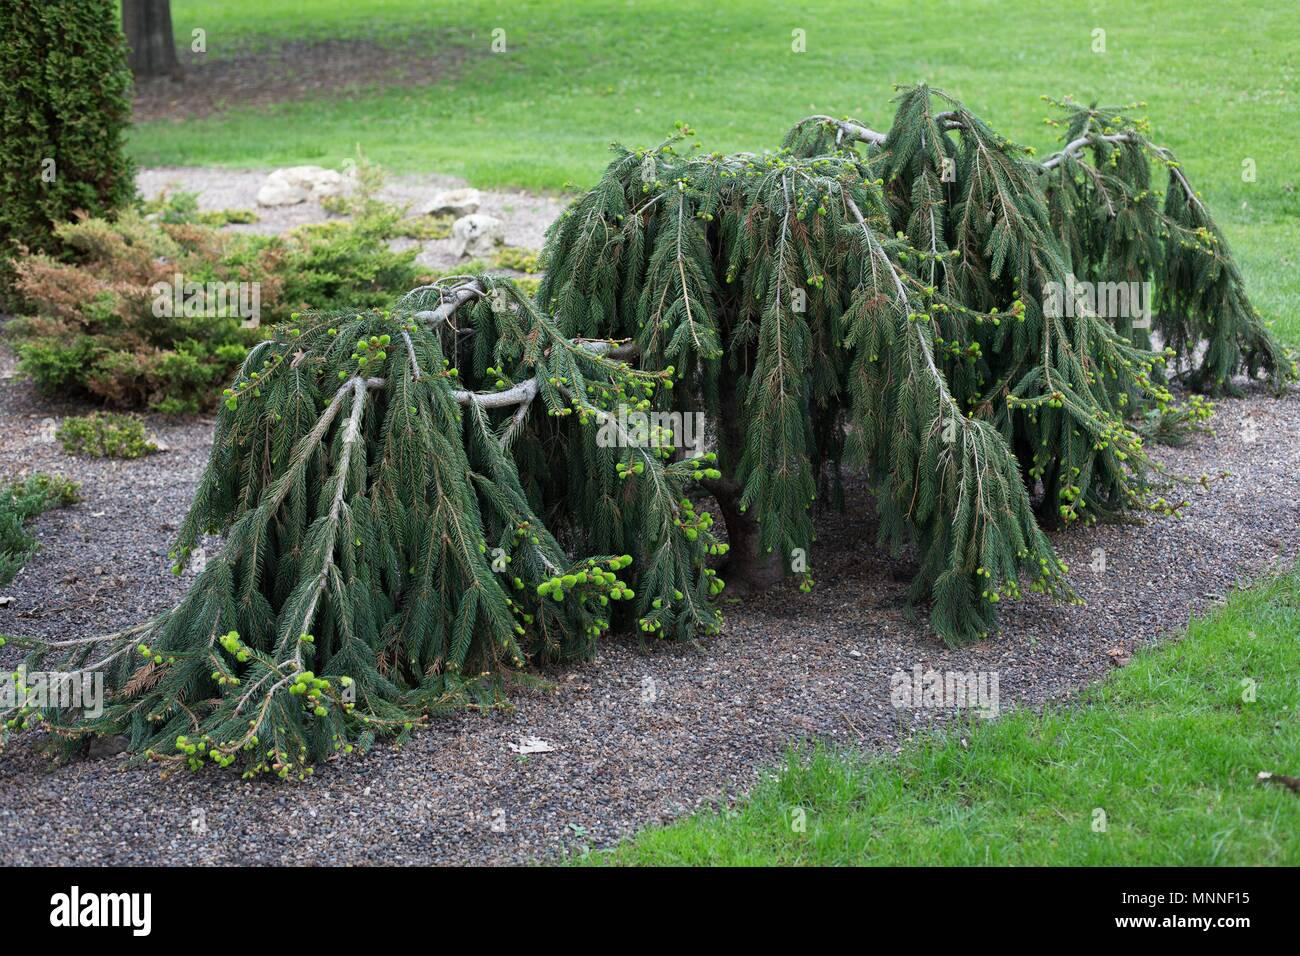 Weeping evergreen trees at Lyndale Park in Minneapolis, Minnesota, USA. - Stock Image